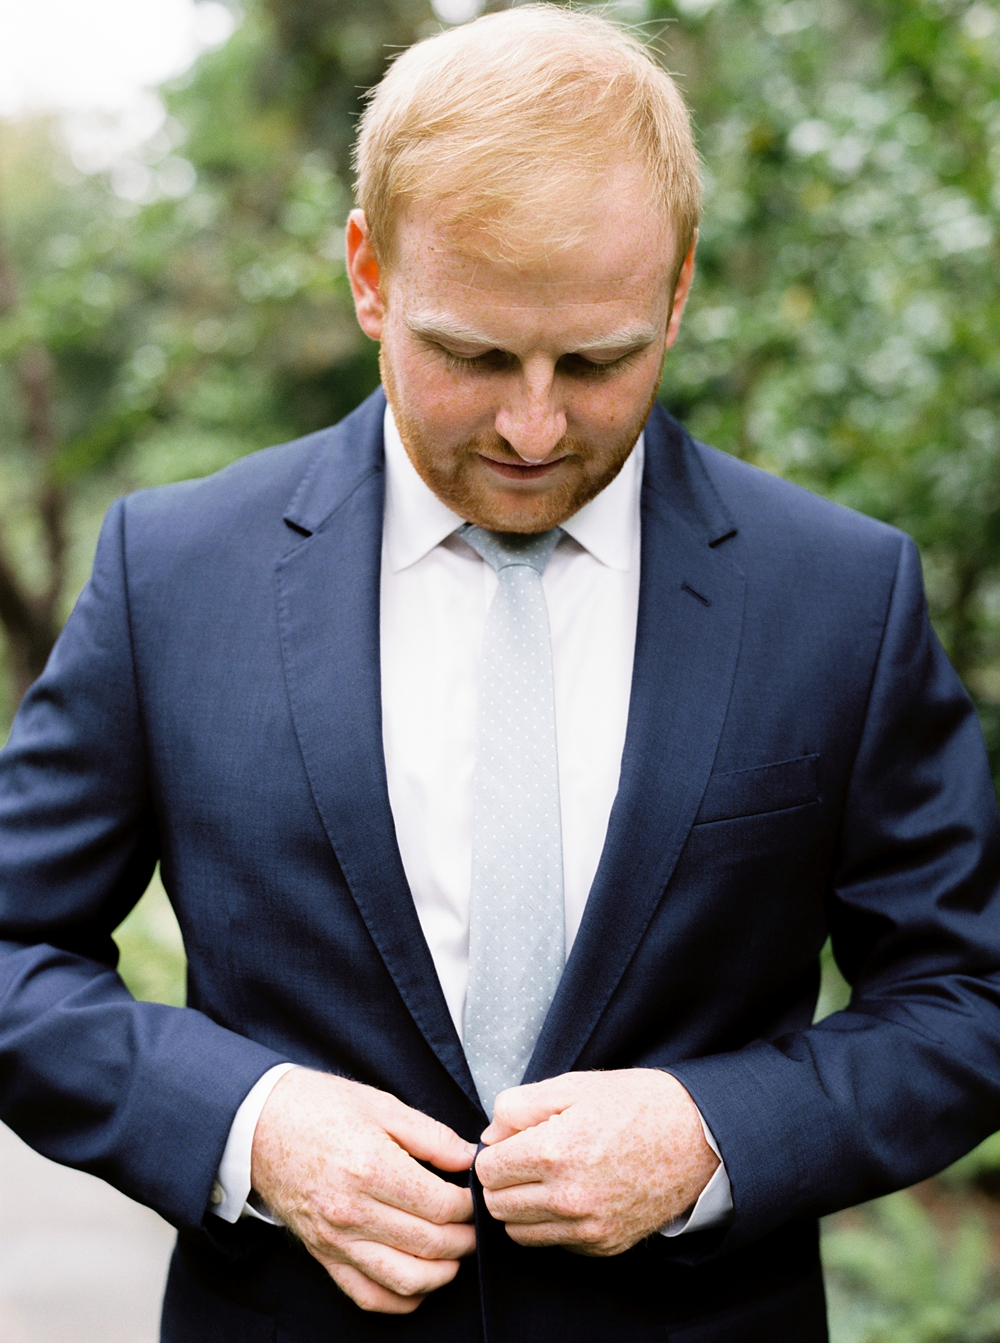 Portrait of the groom buttoning his jacket